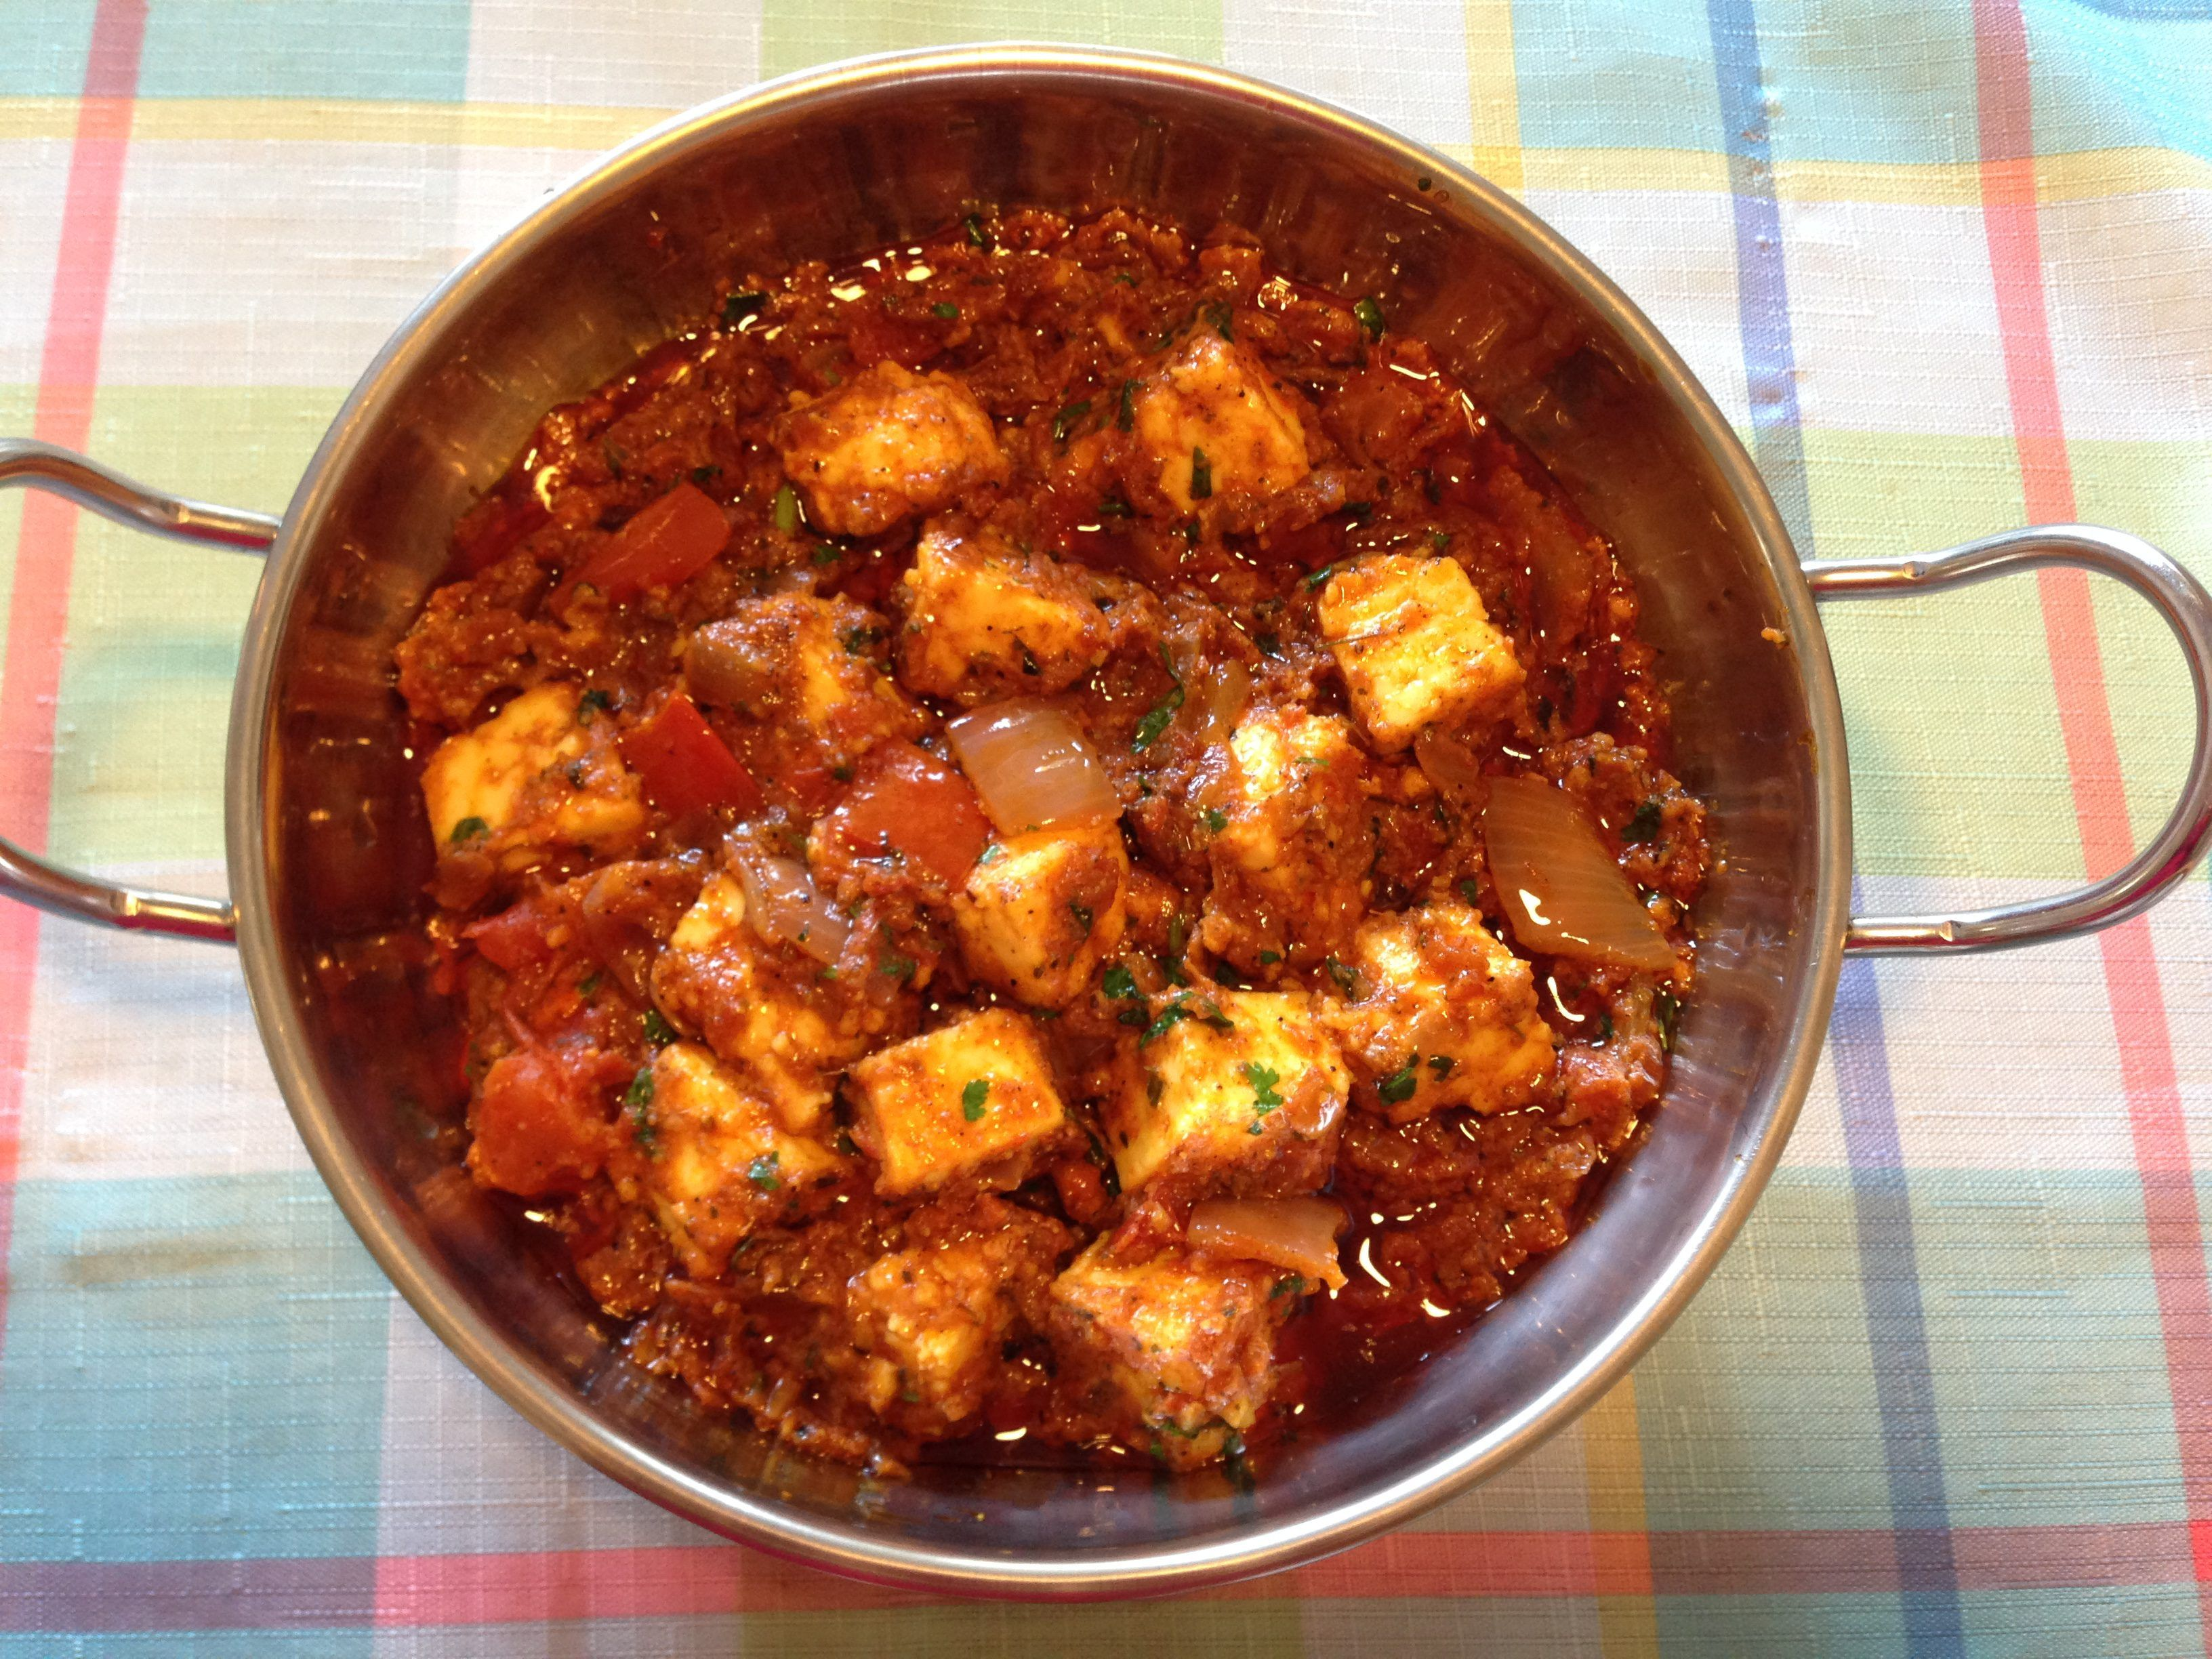 Kadai Paneer Is Dish Gets Its Name From Kadai, An Indian Wok, Which Is